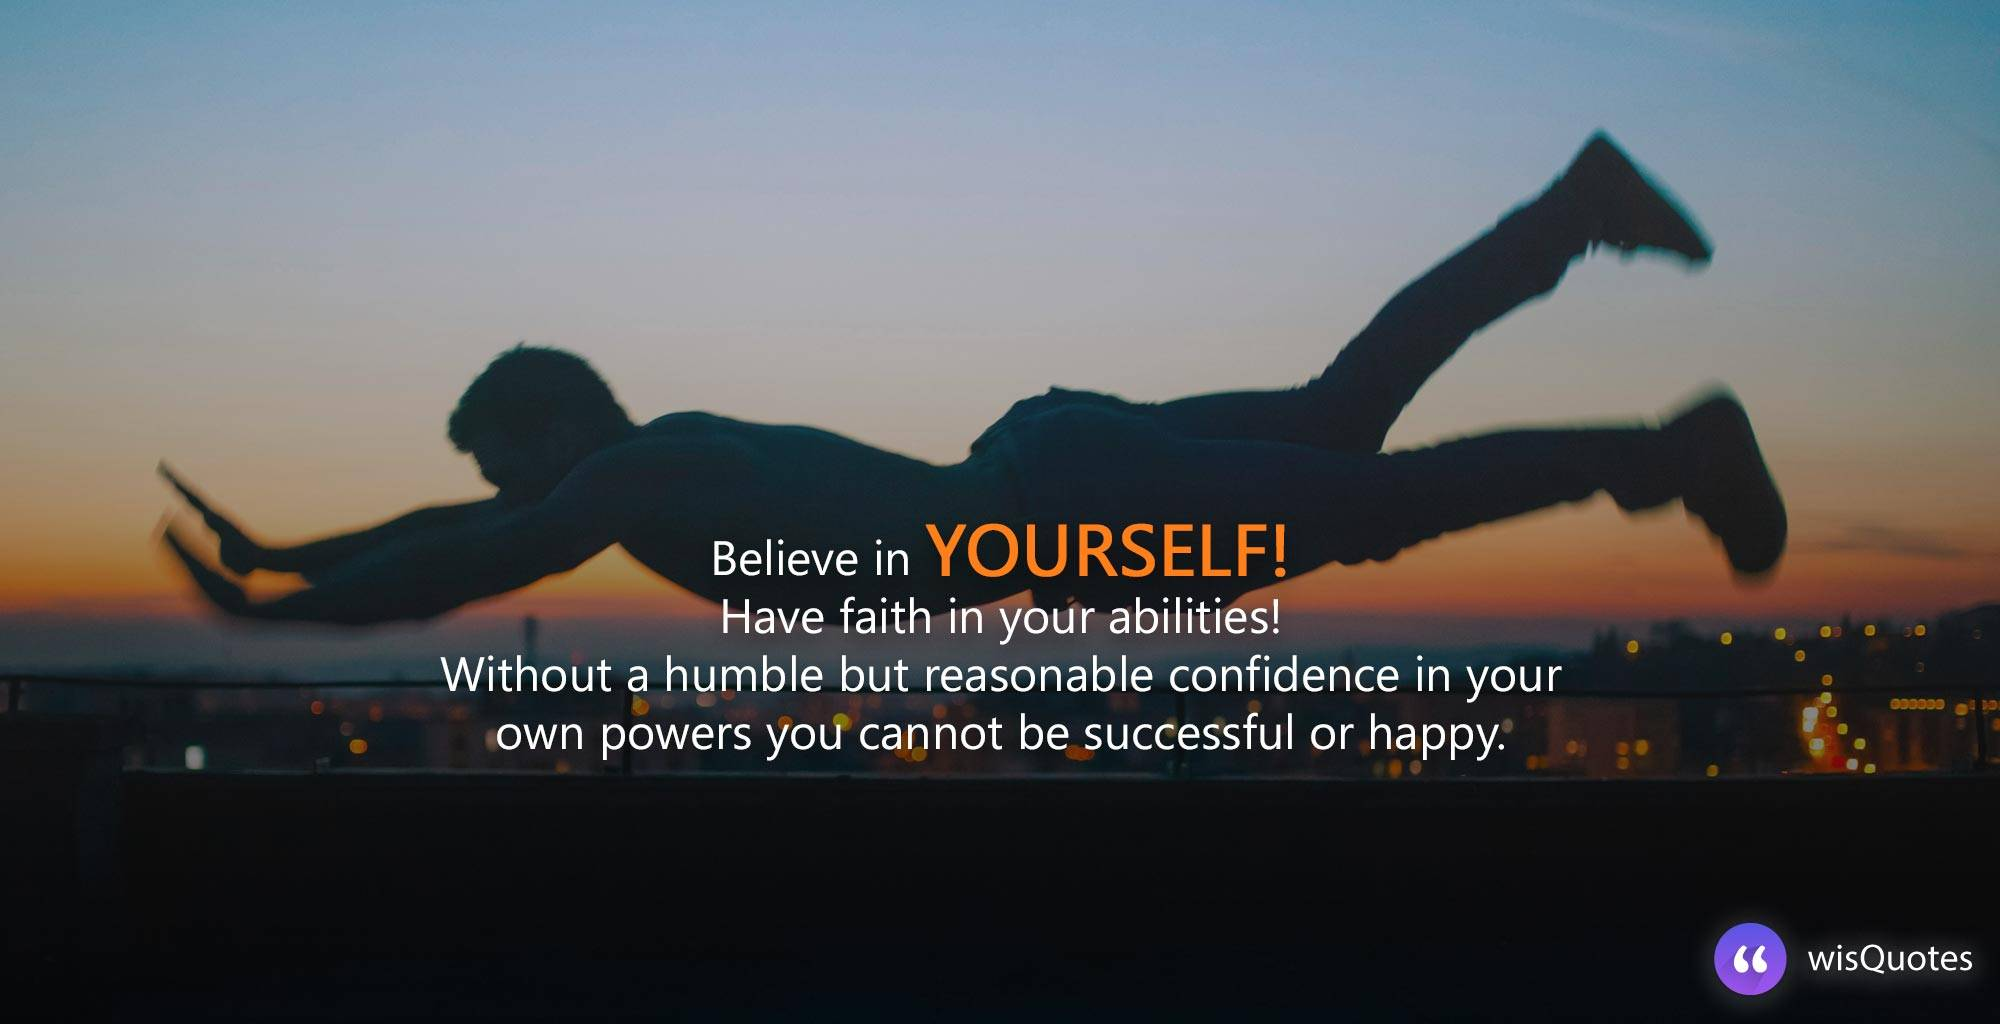 Believe in yourself! Have faith in your abilities! Without a humble but reasonable confidence in your own powers you cannot be successful or happy.